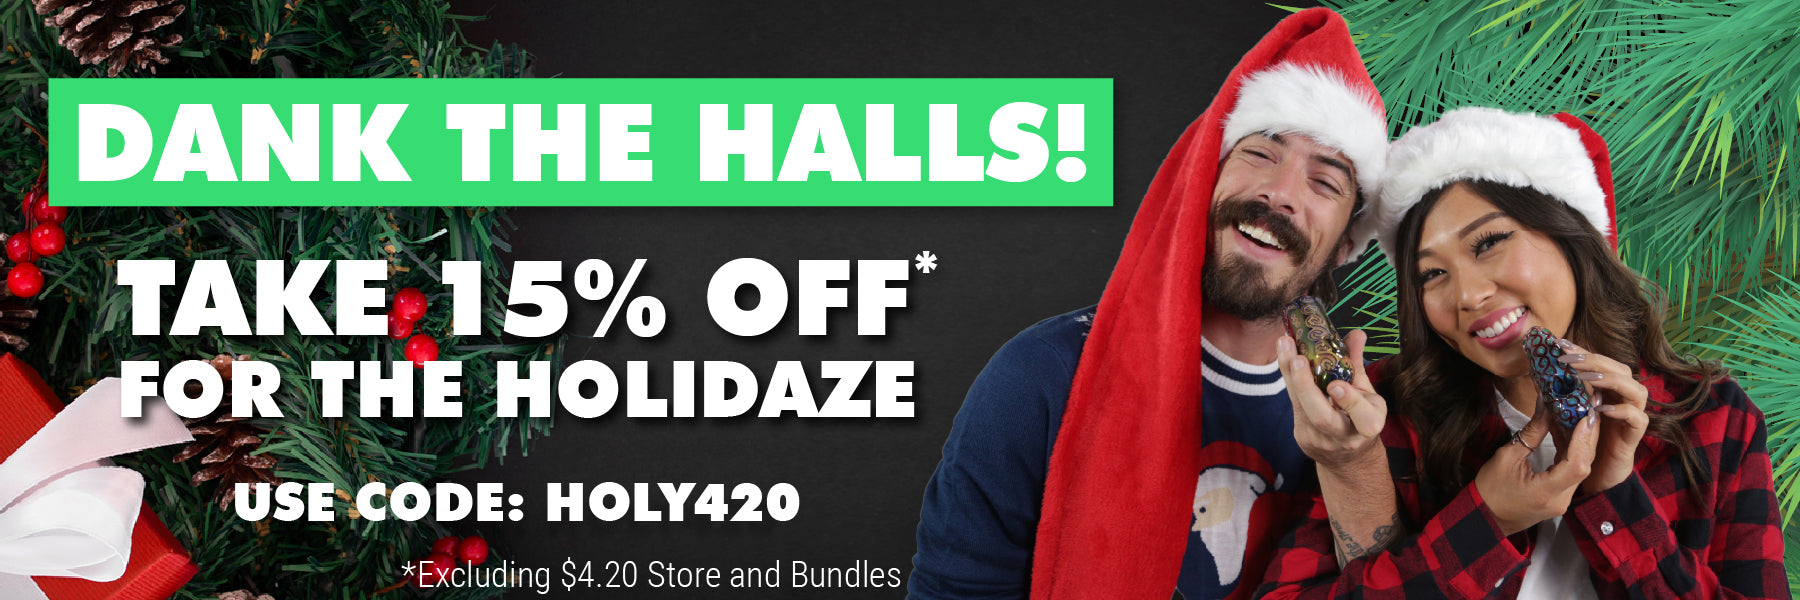 Dank the halls! Take 15% off for the holidaze - use code: HOLY420